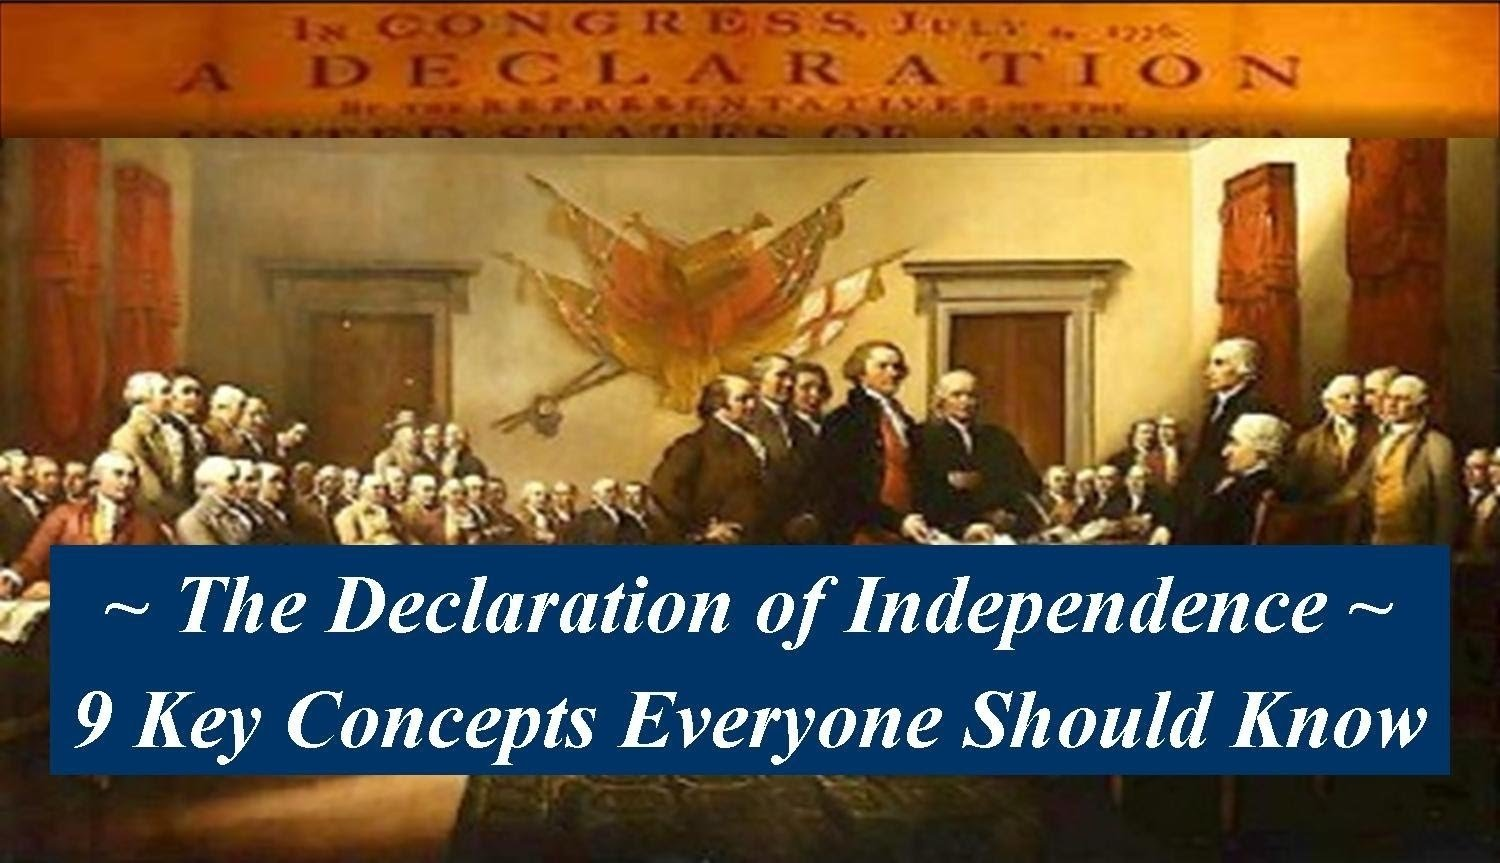 understanding the declaration of independence - 9 key concepts